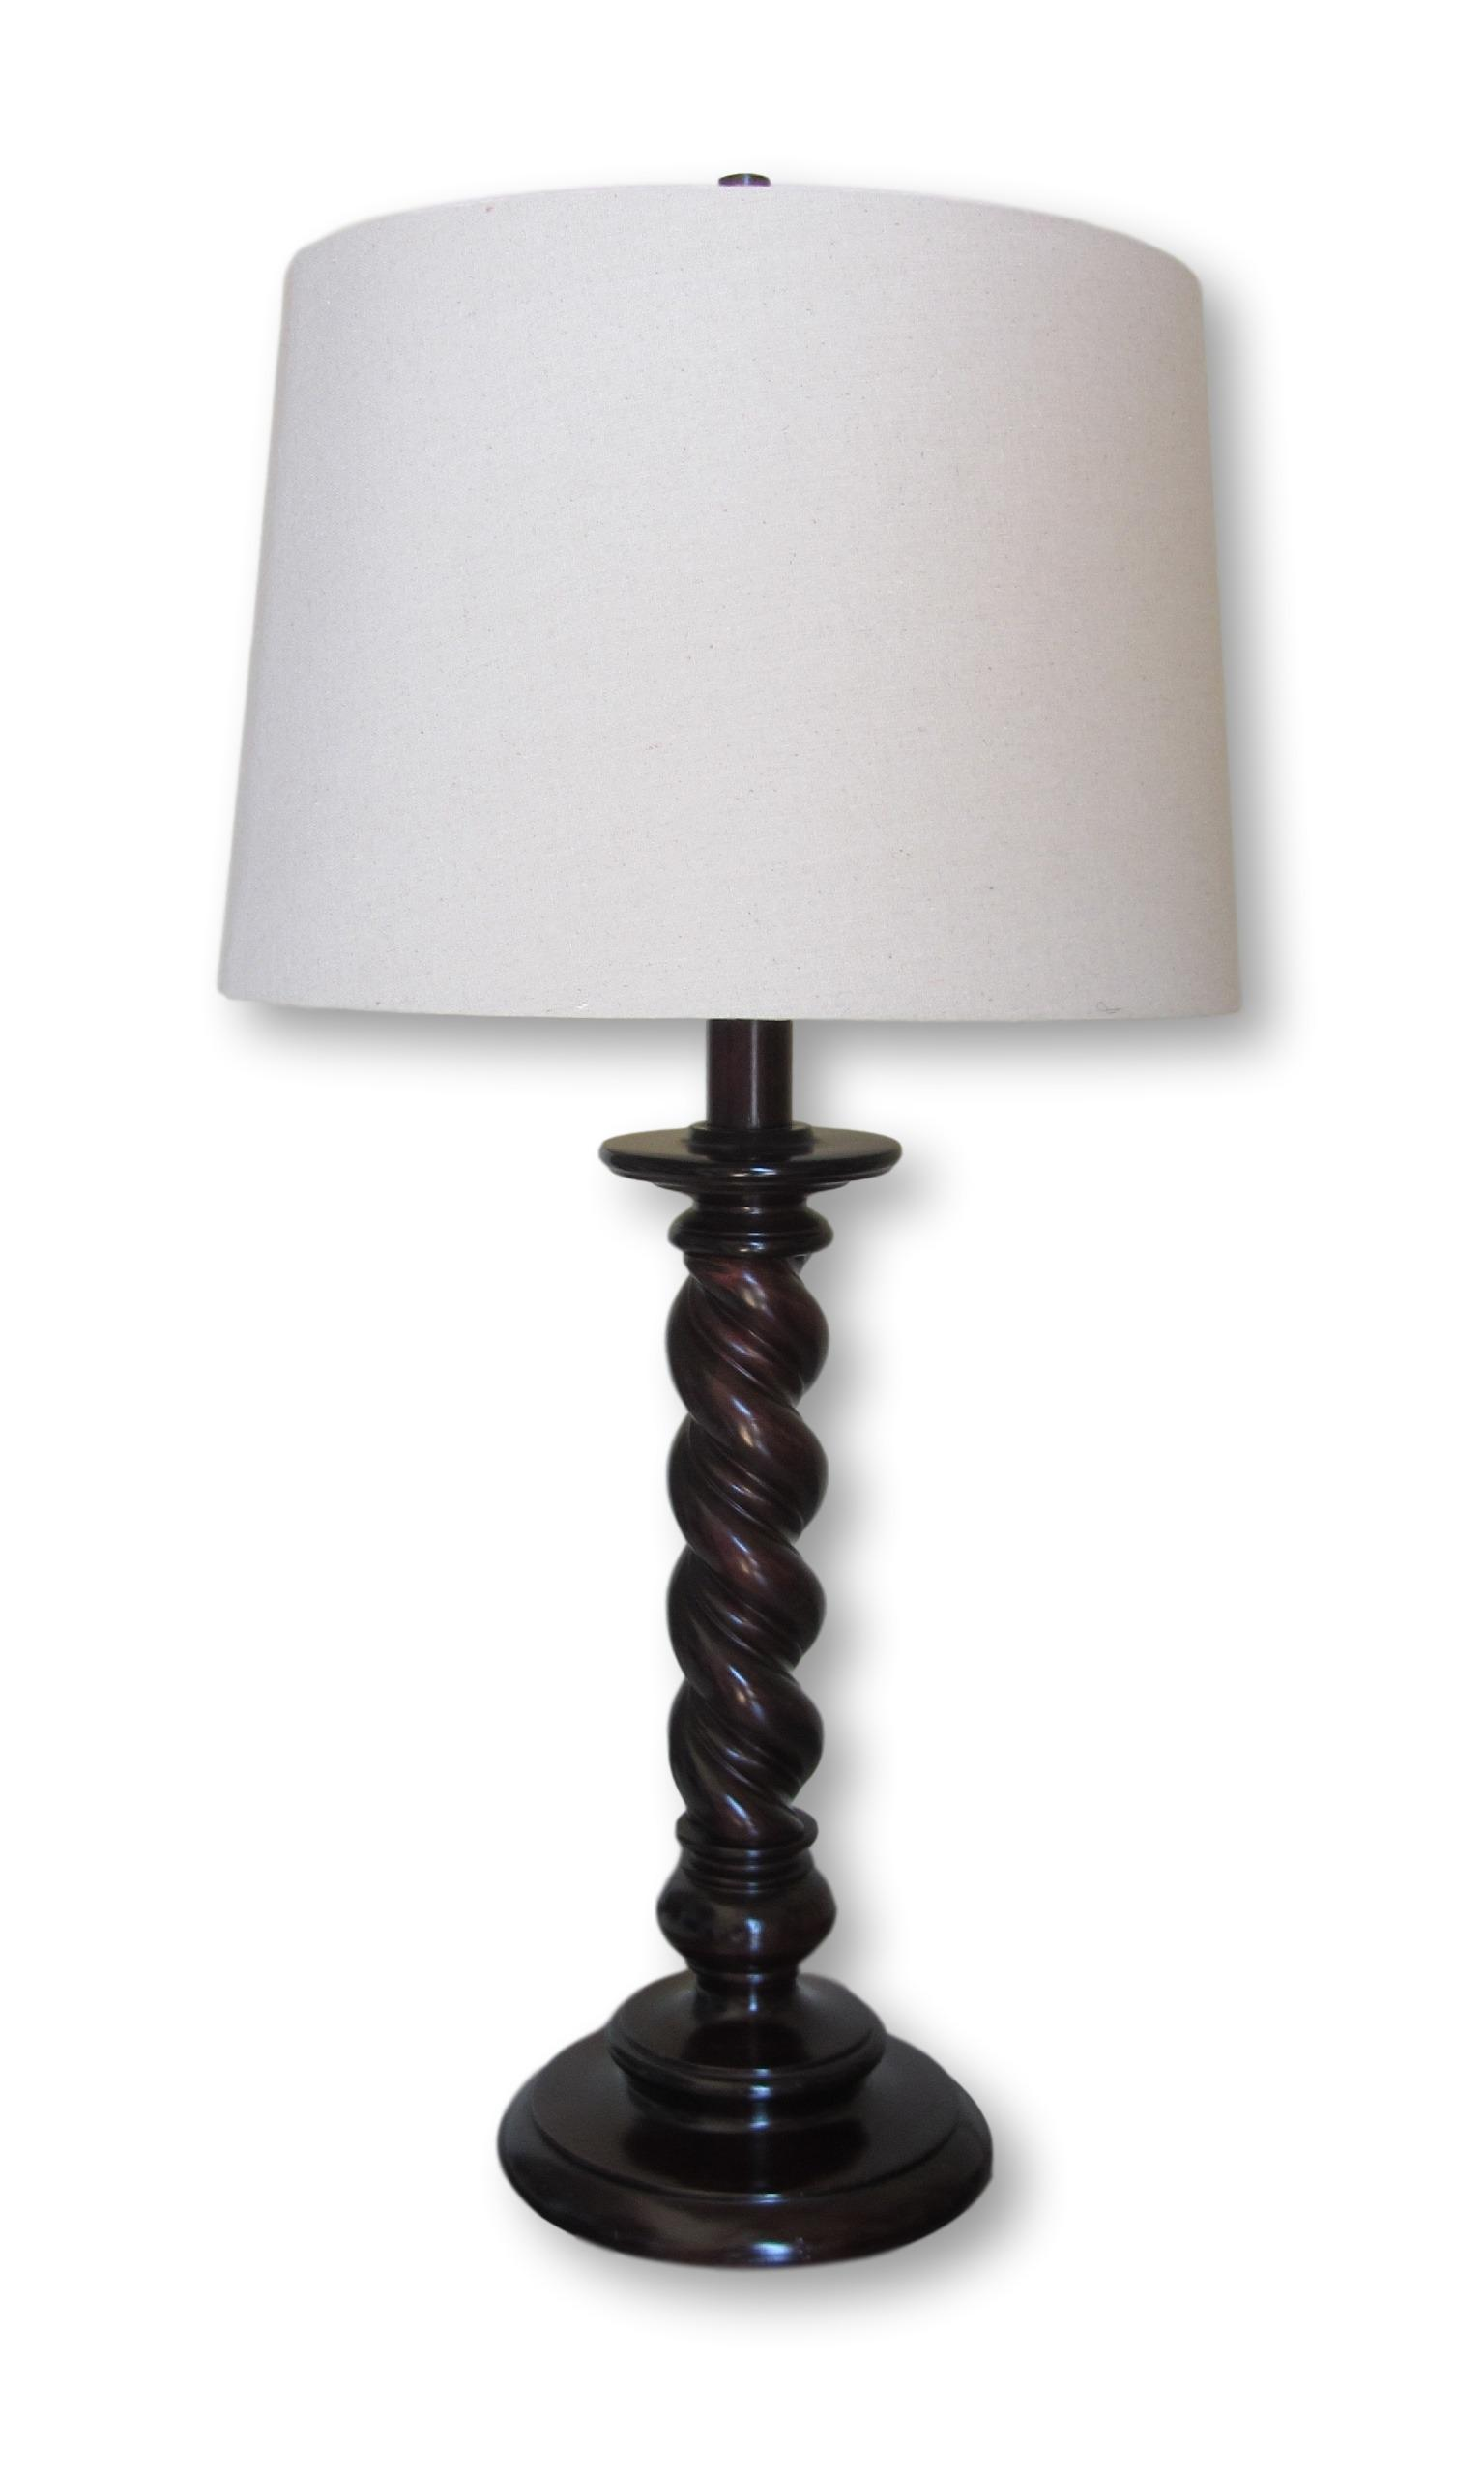 Restoration Hardware Barley Twist Table Lamp